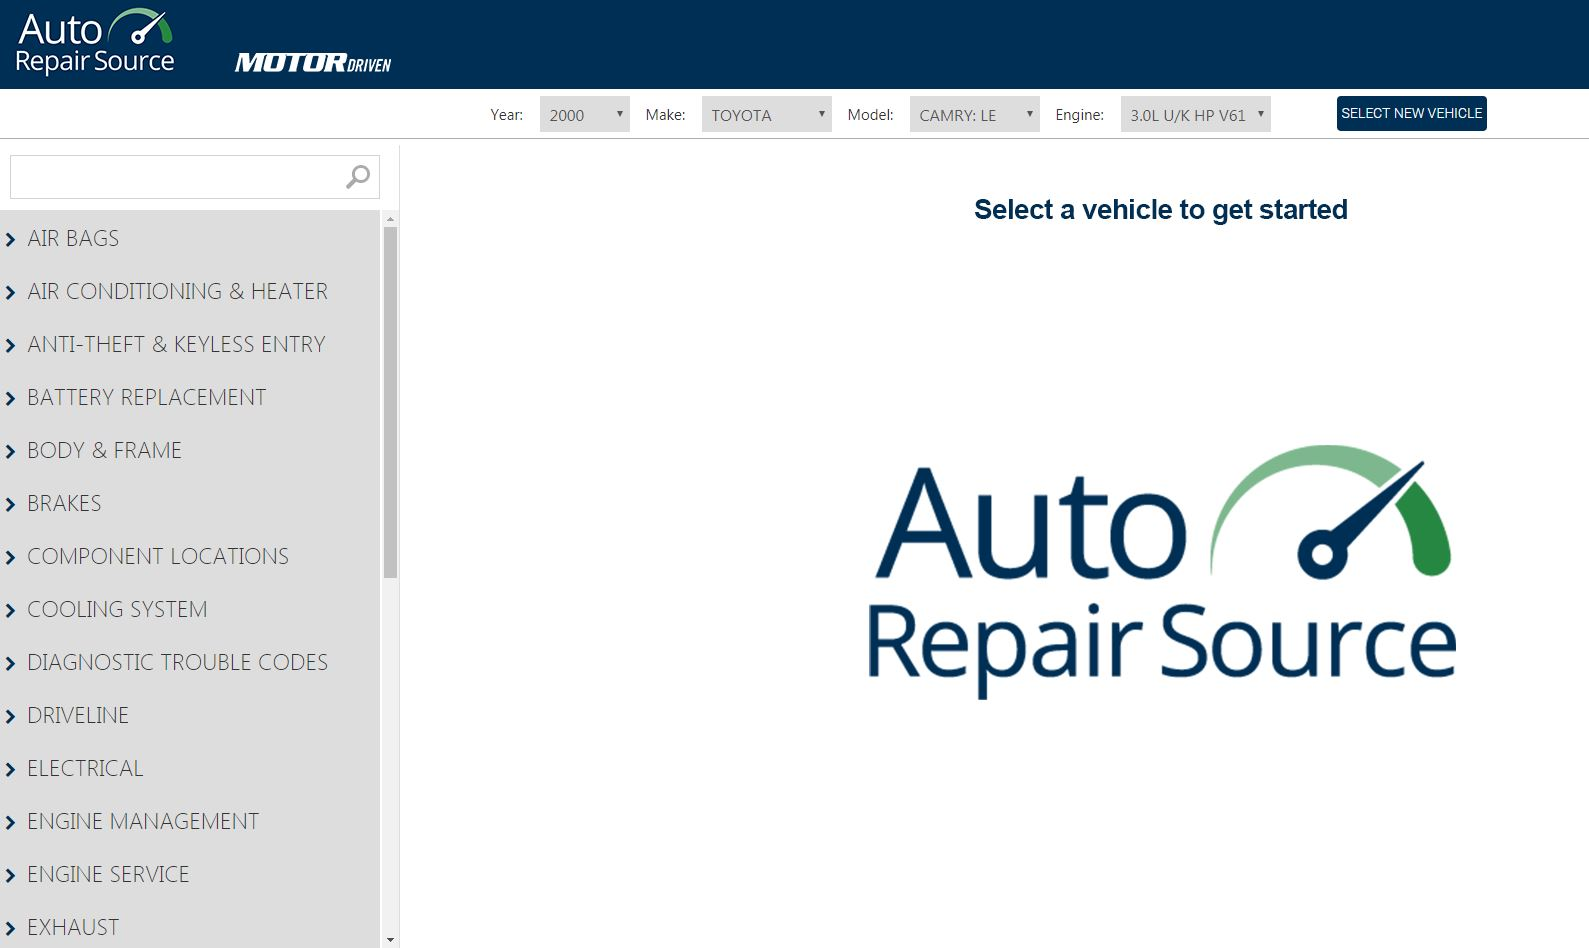 Auto Repair Source homepage